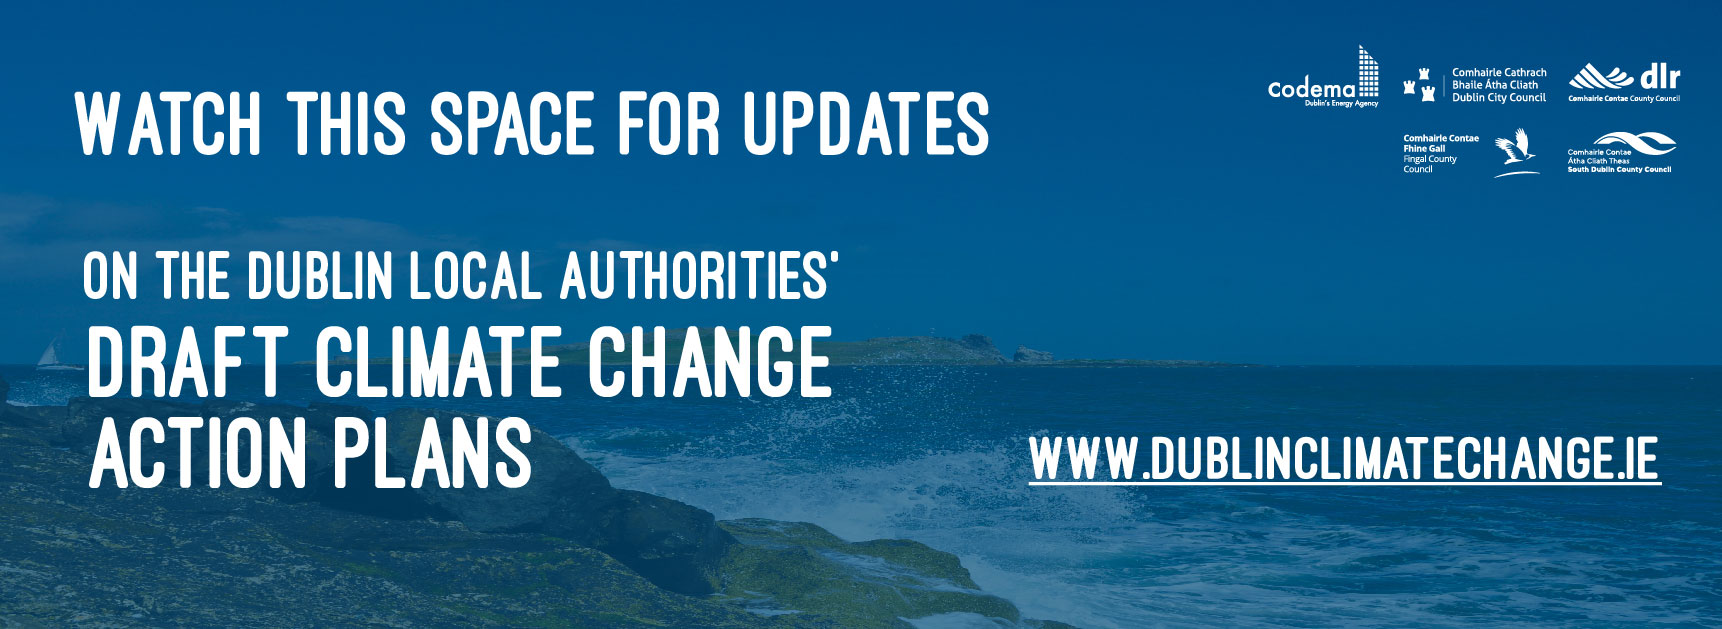 Public Consultation on the Draft Climate Change Action Plans